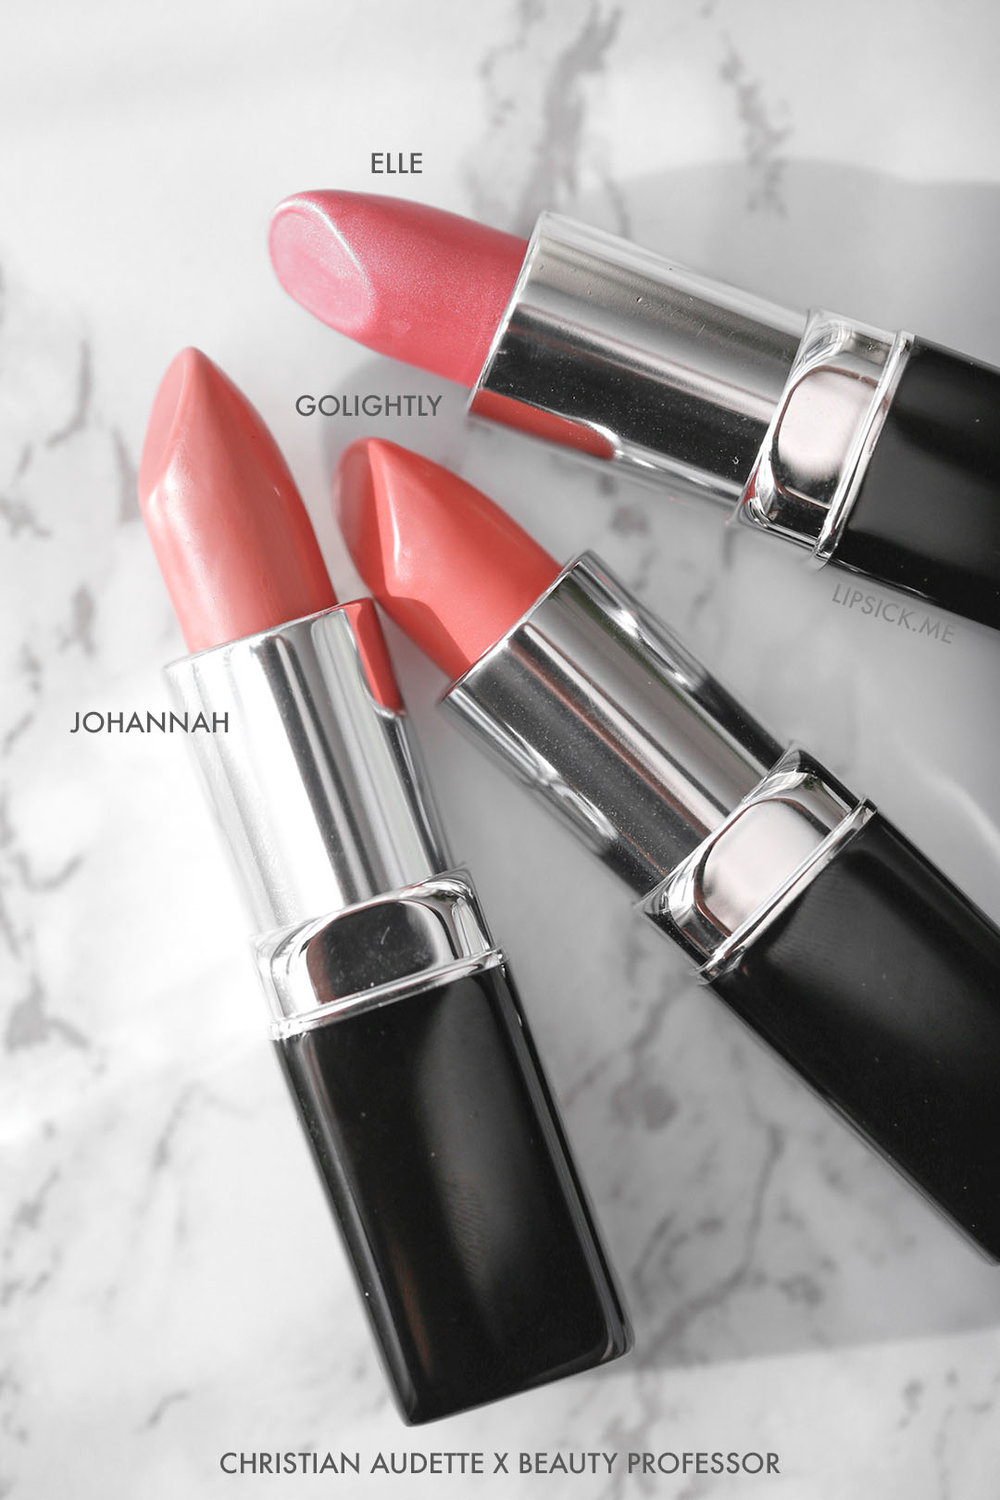 Christian Audette x Beauty Professor lipstick collection, Golightly, Johannah, Elle - beauty blog lipsick.me by Nathalie Martin_3195-2 copy.jpg